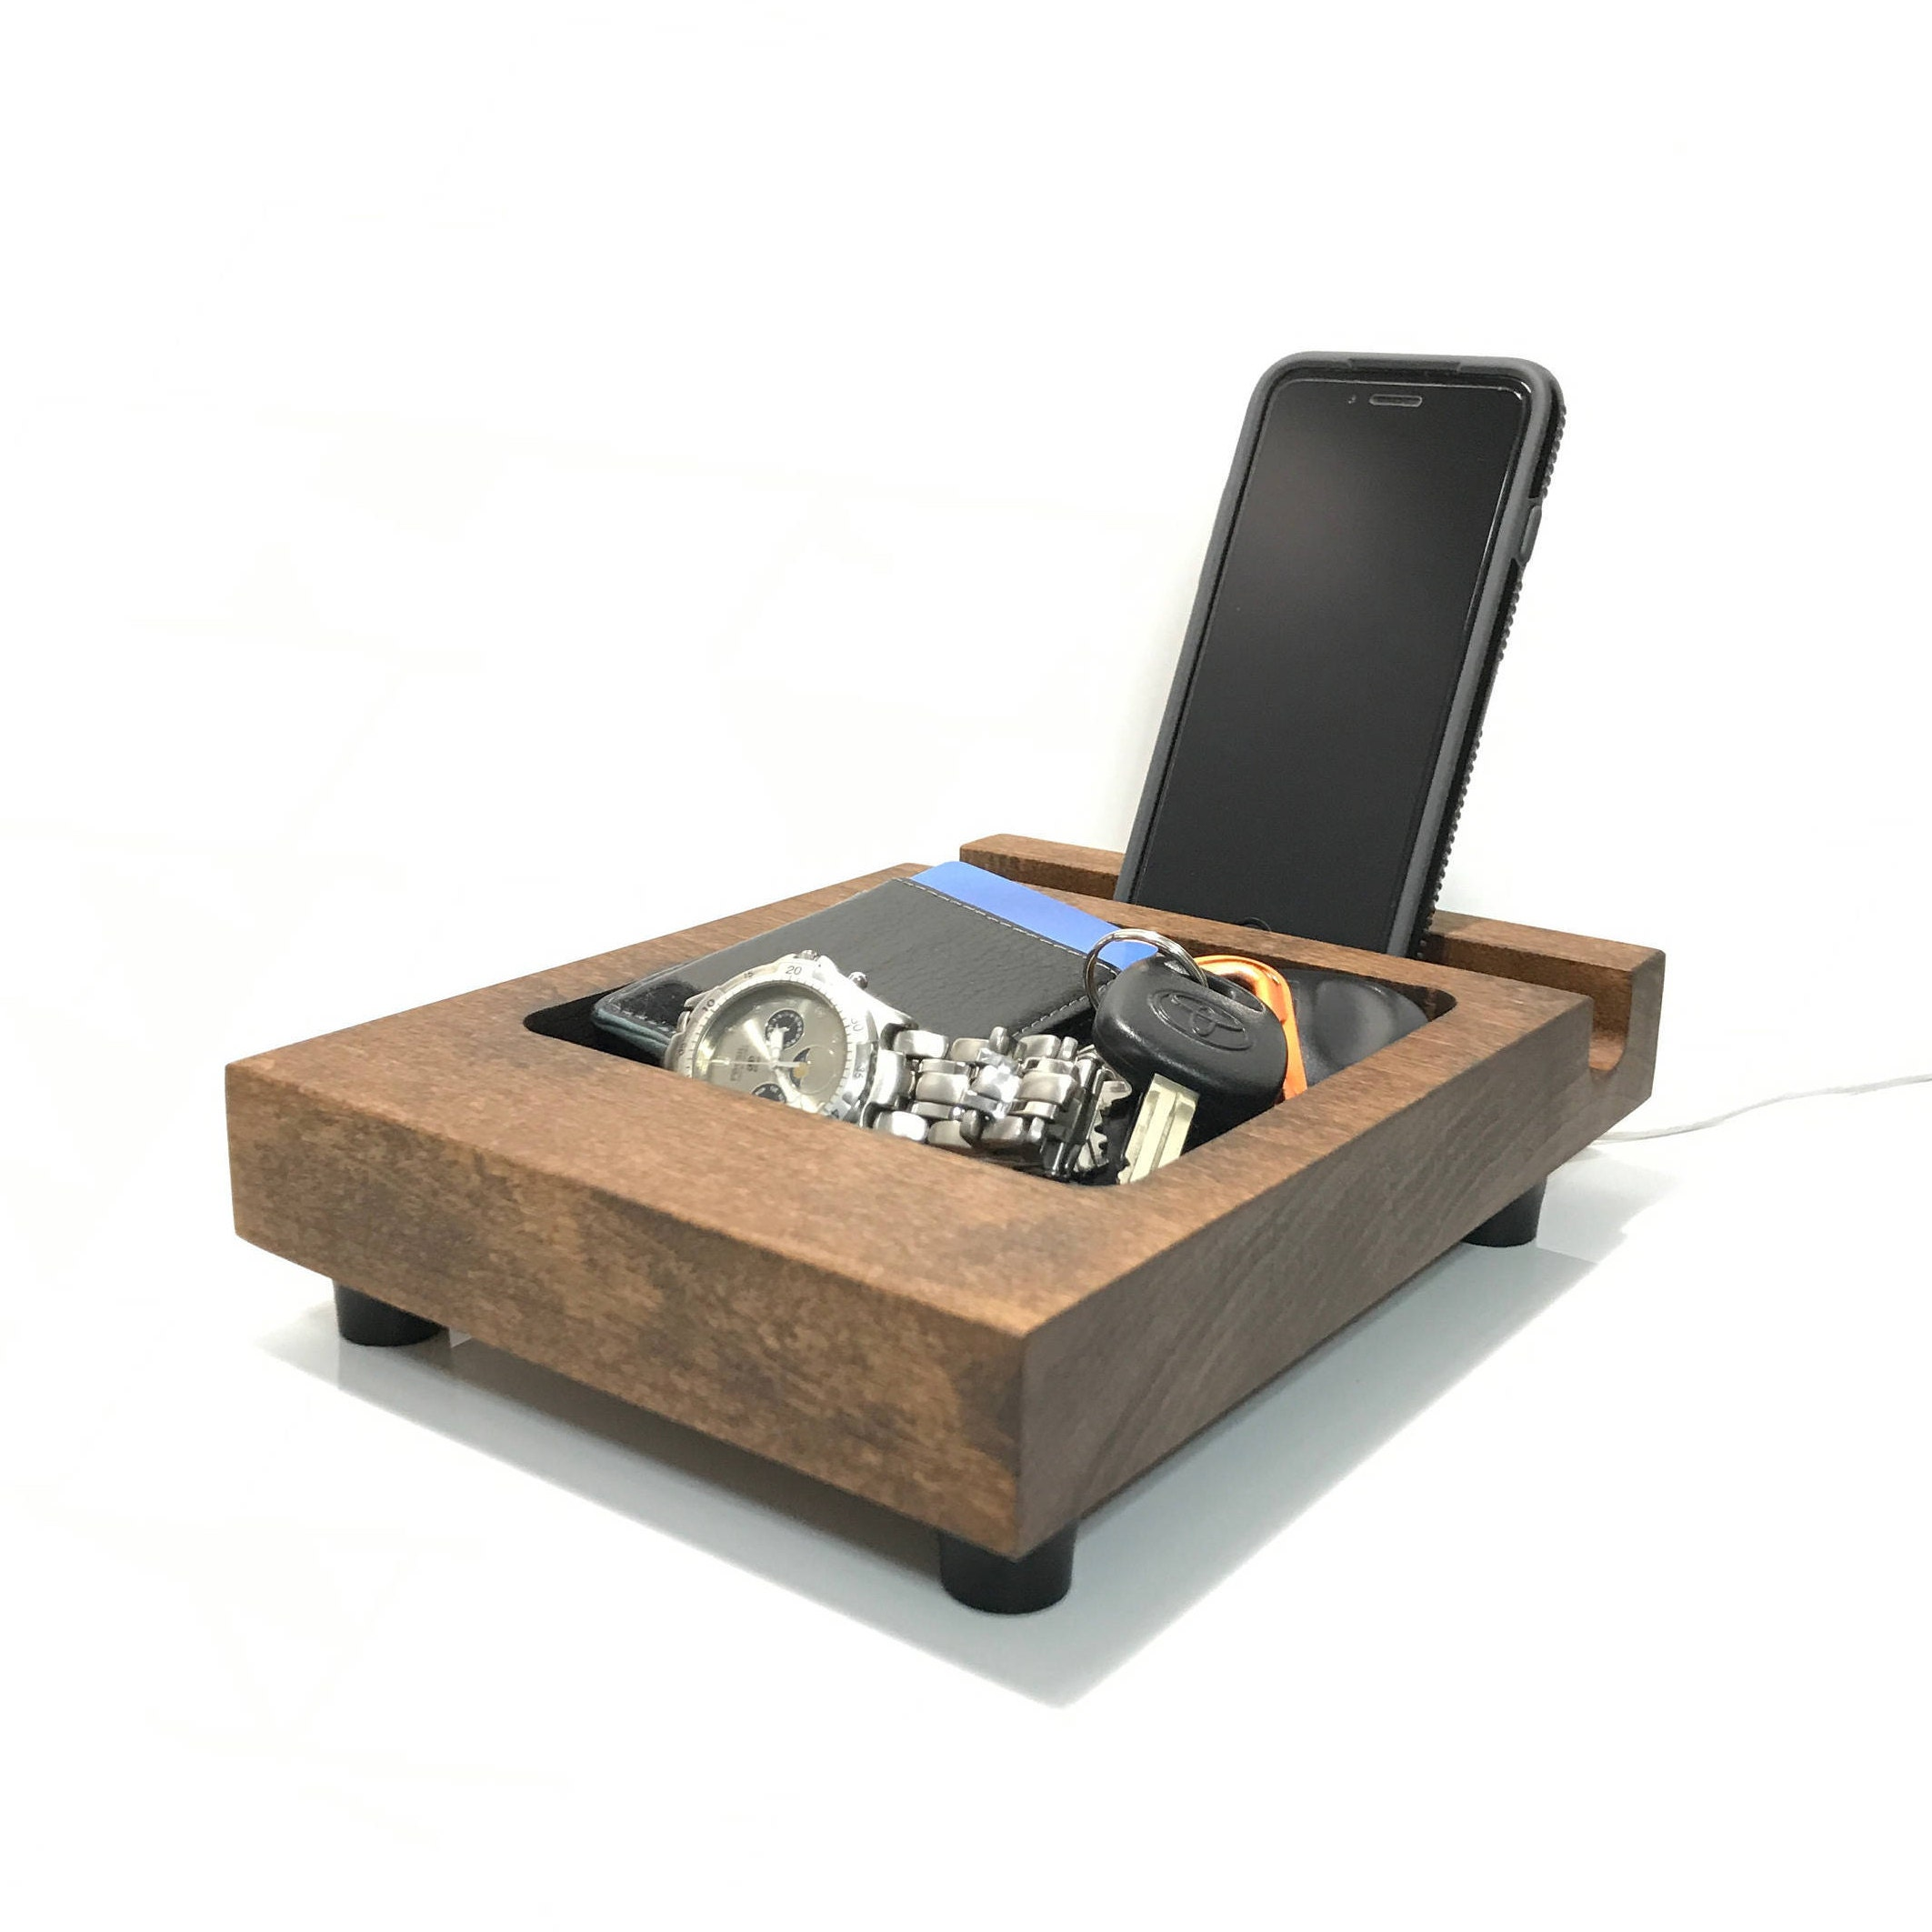 Docking Station For Iphone Or Ipad Rustic Wood Charging